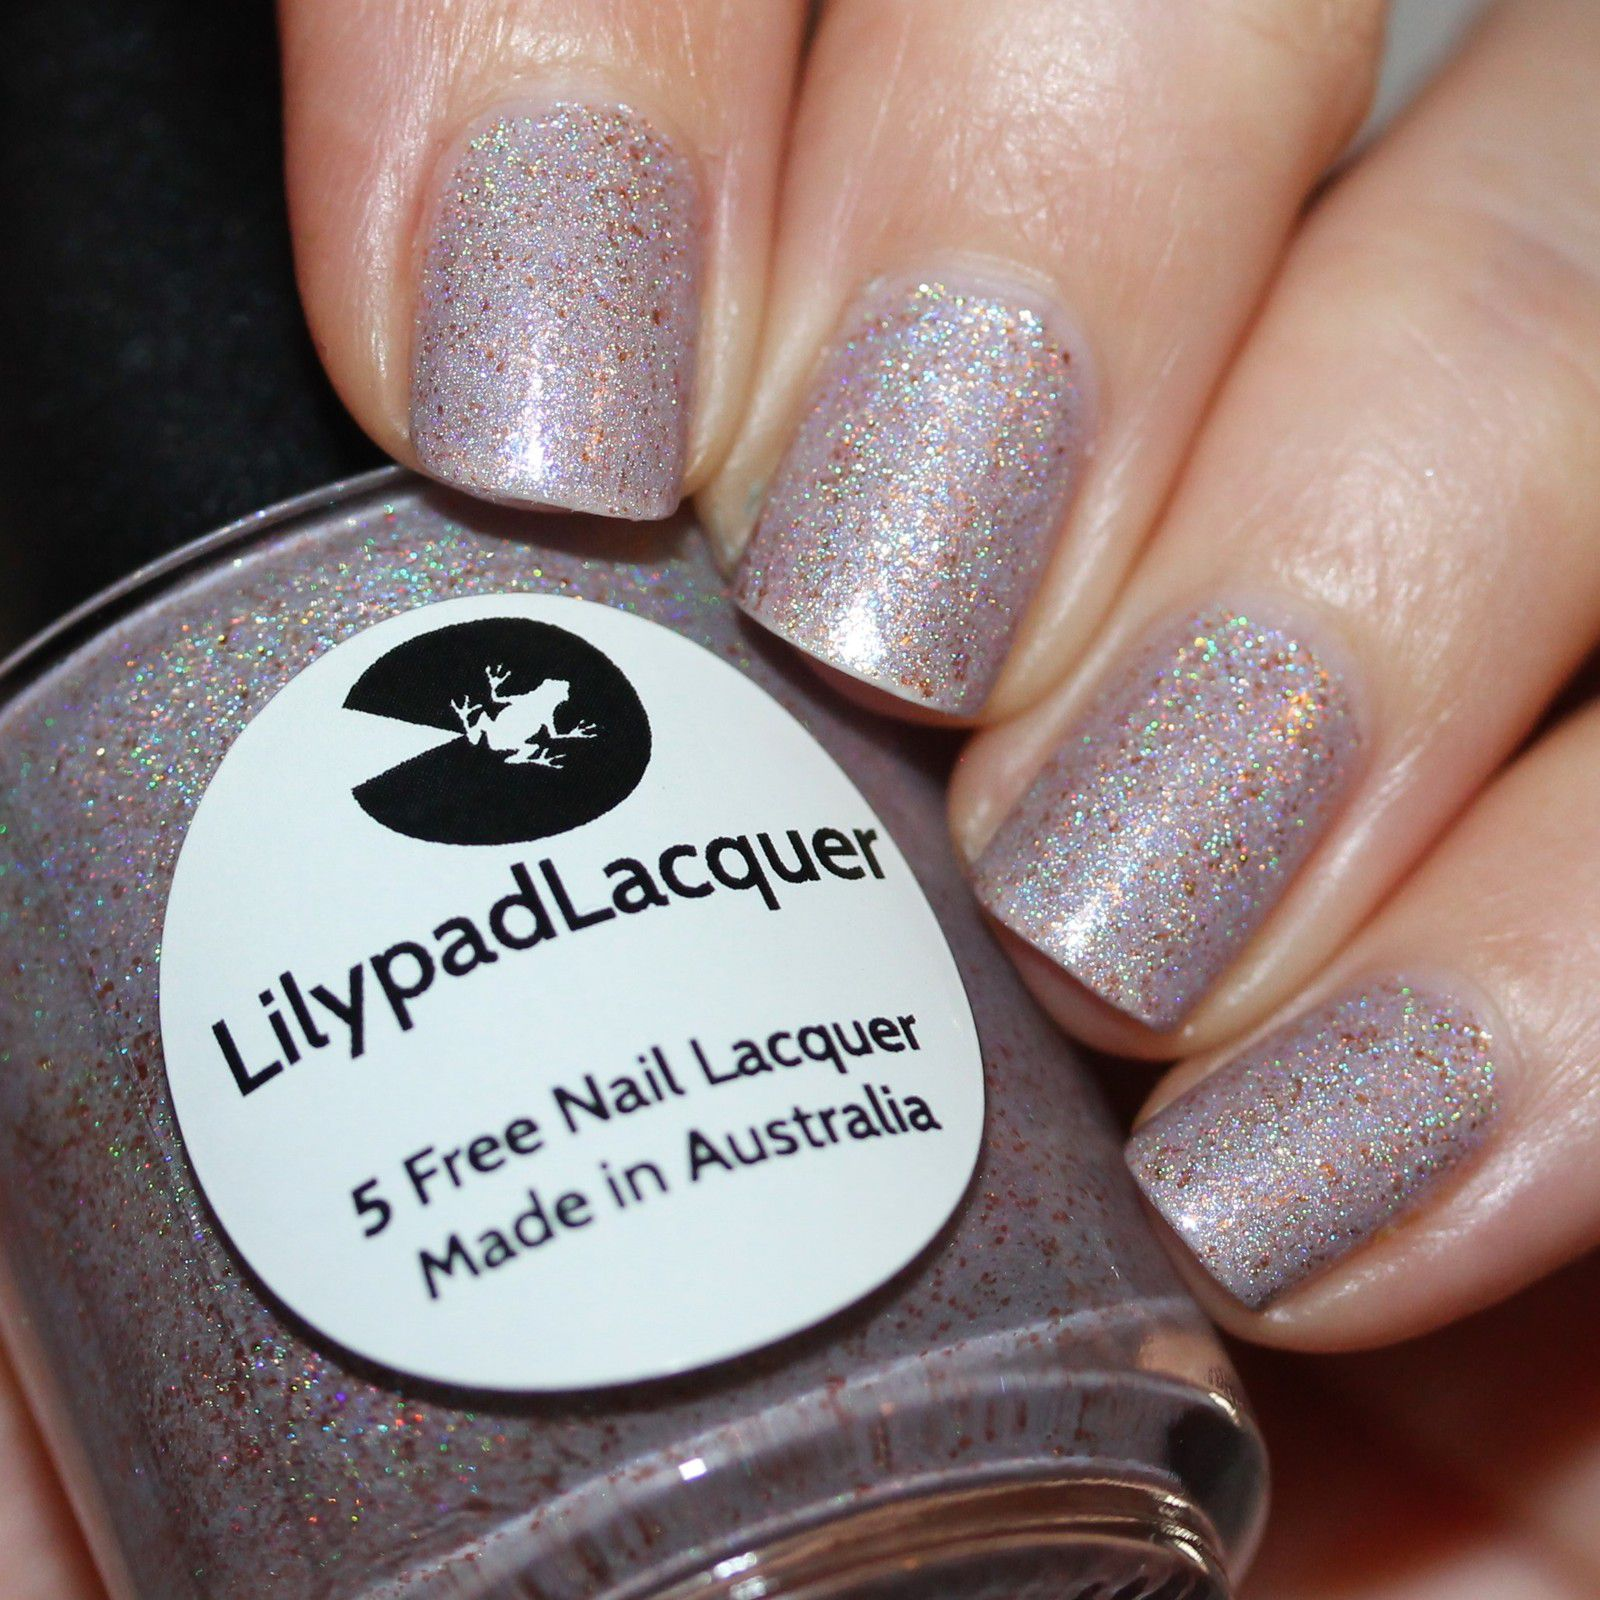 Lilypad Lacquer First Base / Lilypad lacquer Luminous / Lilypad Lacquer Crystal Clear Top Coat